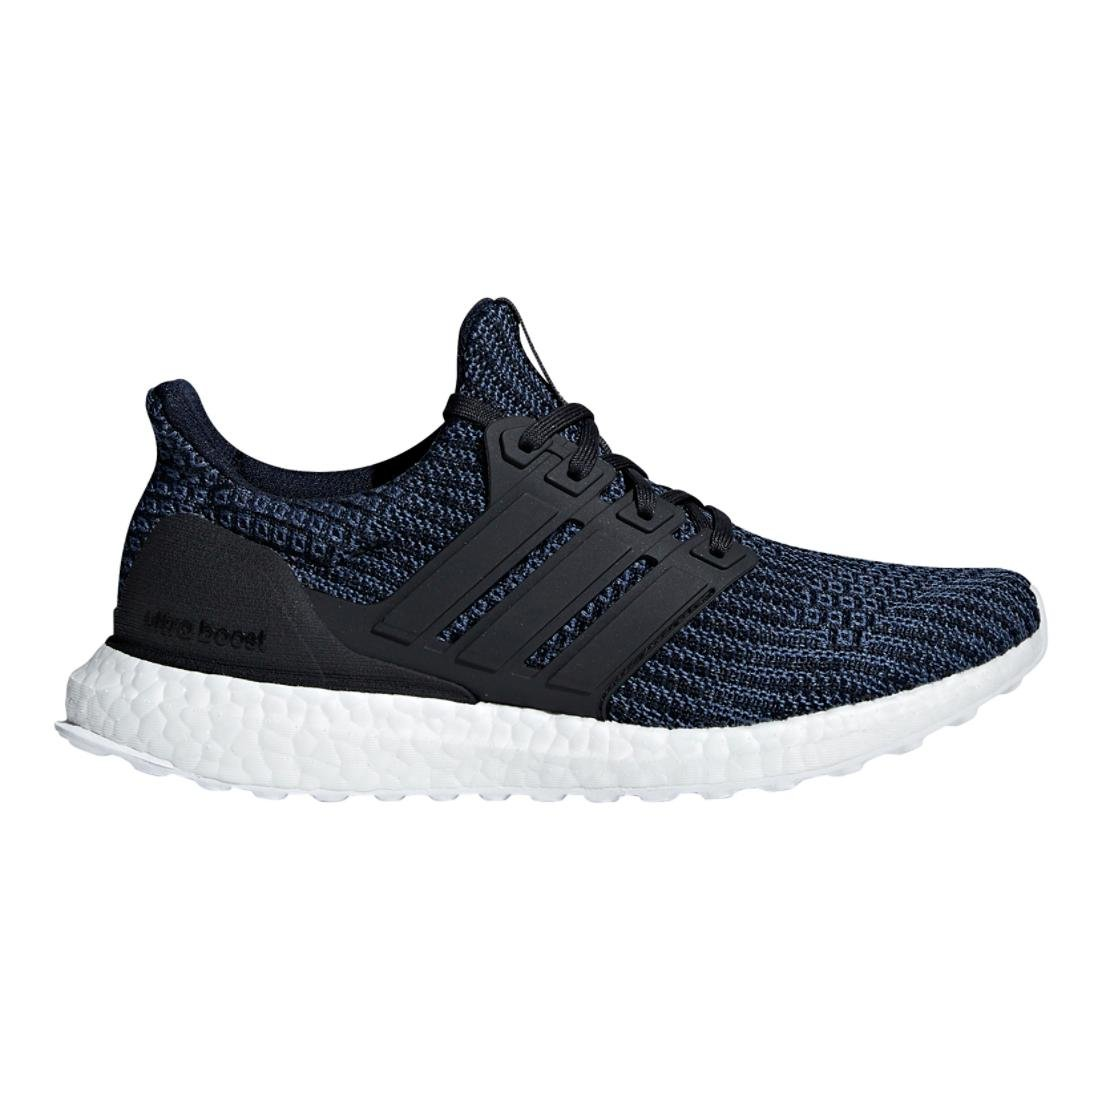 adidas Women's Ultraboost Parley Running Shoe B077XKGMD5 9 B(M) US|Legend Ink/Carbon/Blue Spirit